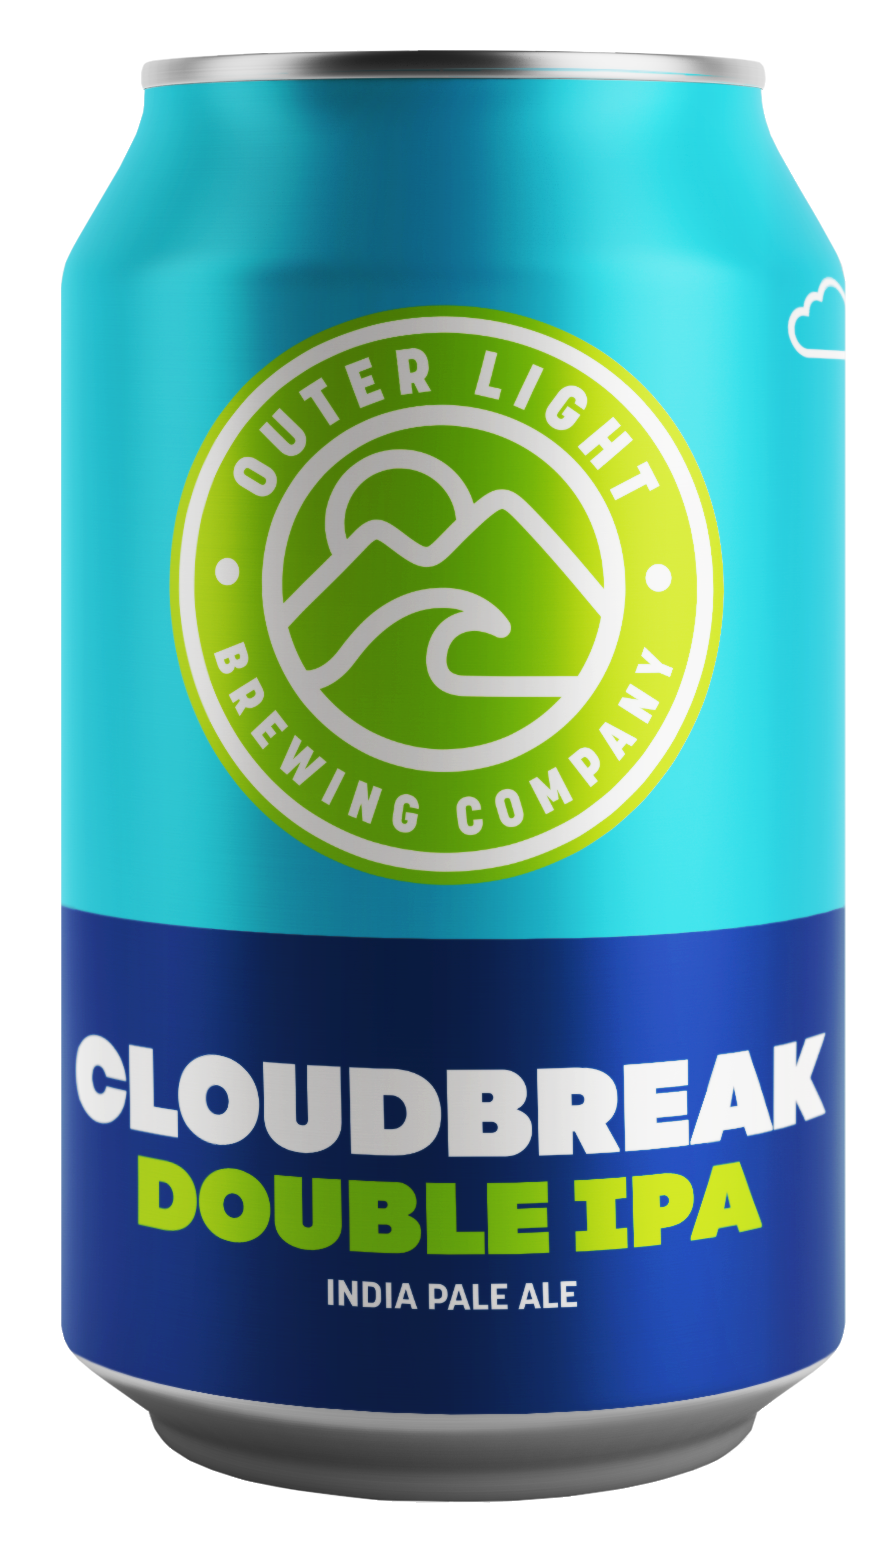 - Cloudbreak™ Double IPAOur Double IPA features light malt and a hazy appearance that suddenly yields to bright, big hop flavor. Pacific hops impart notes of papaya, berry and black tea with an enticing tropical fruit aroma. One sip will part the clouds and lead you to the summit of flavor. 8.5%, Lots of IBU; Hops: Idaho 7, Mosaic; Malts: Pisner, Oats, Carapils, Acidulated